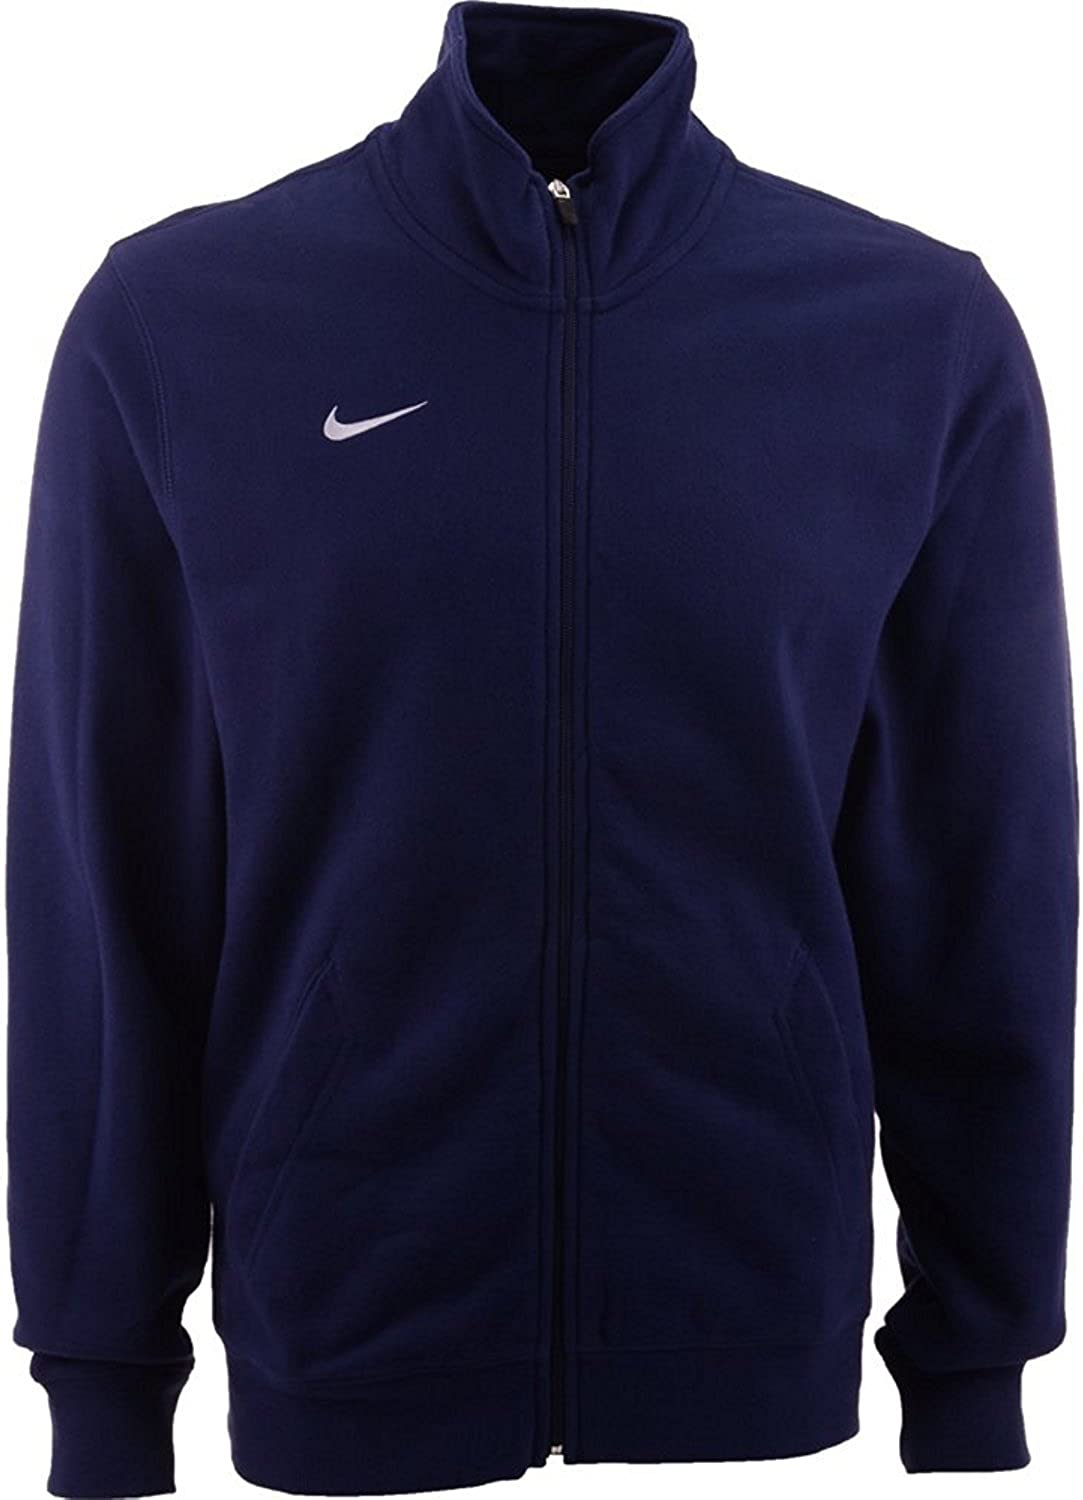 nike fleece mens jacket